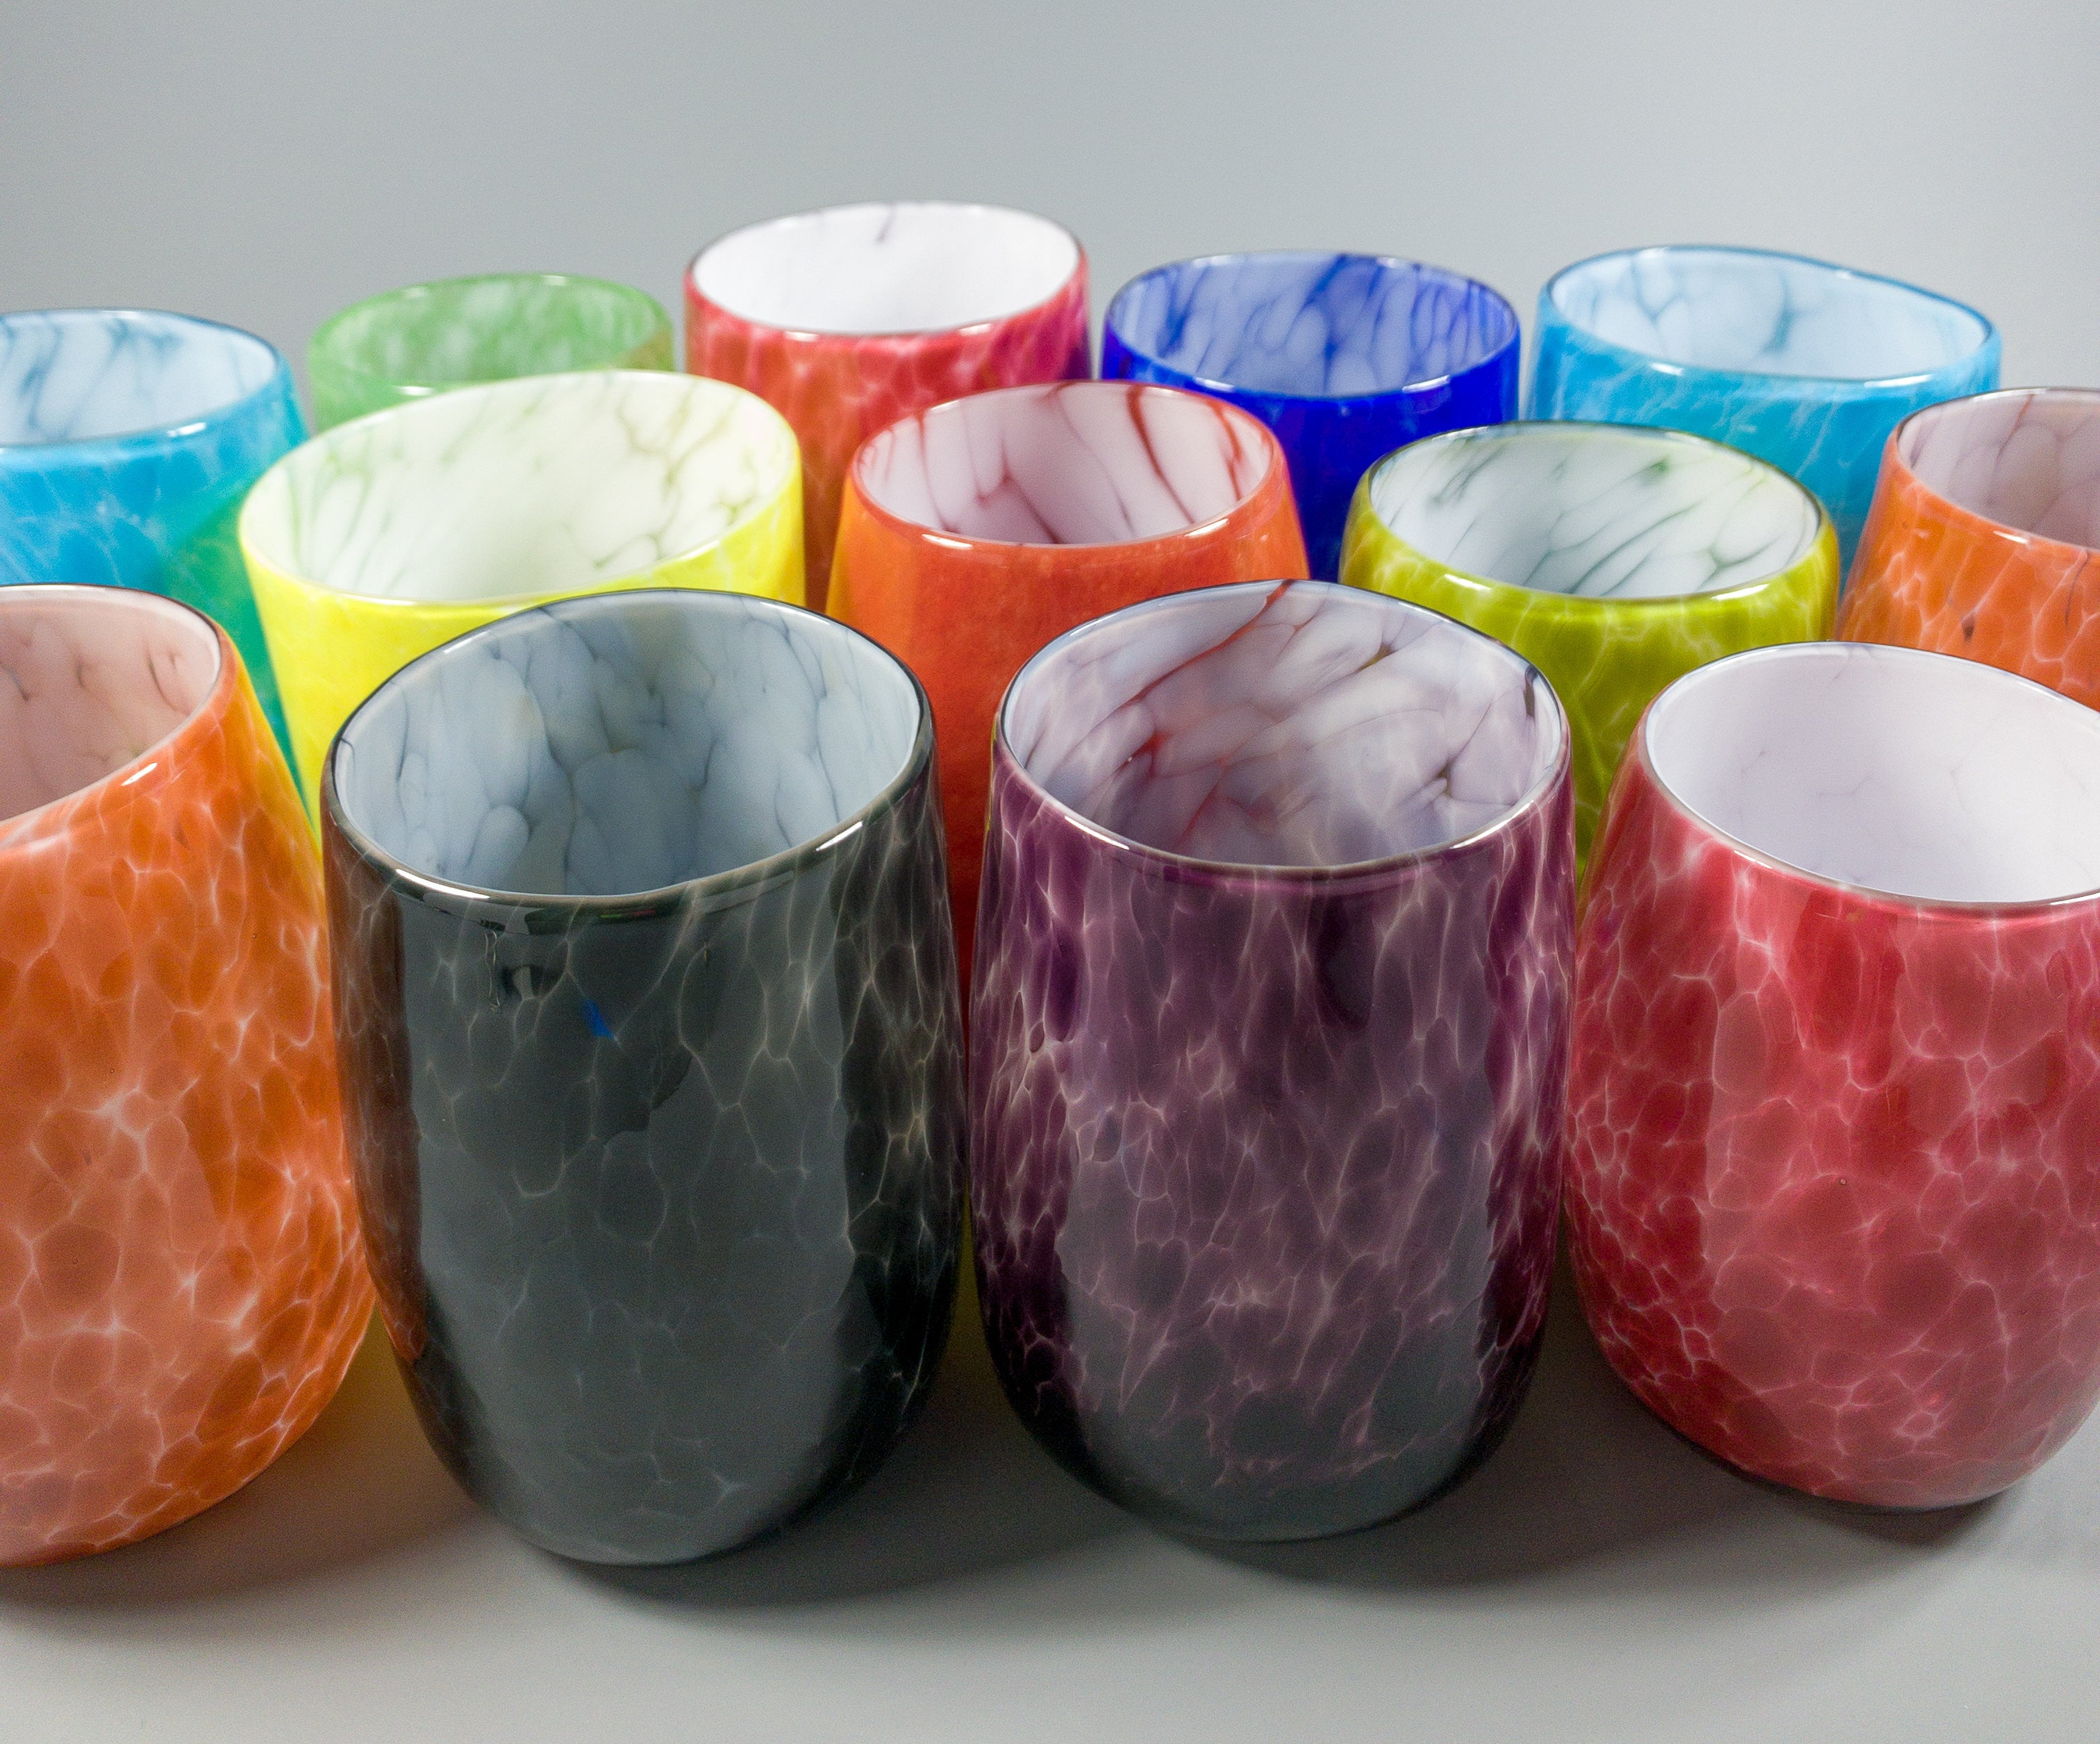 Cheerful Cups: Licorice